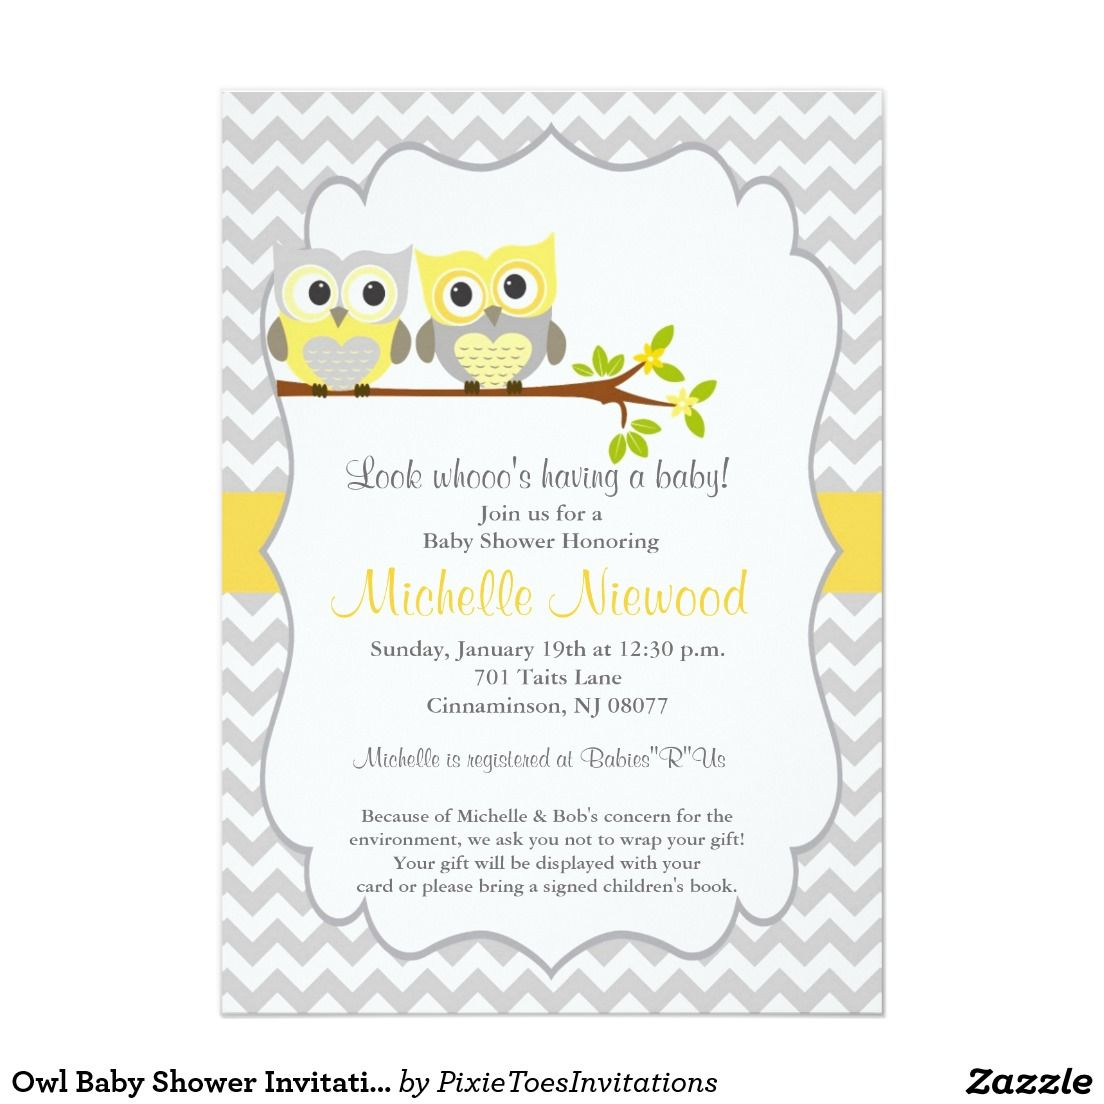 Owl Baby Shower Invitation 5 X 7 Invitation Card